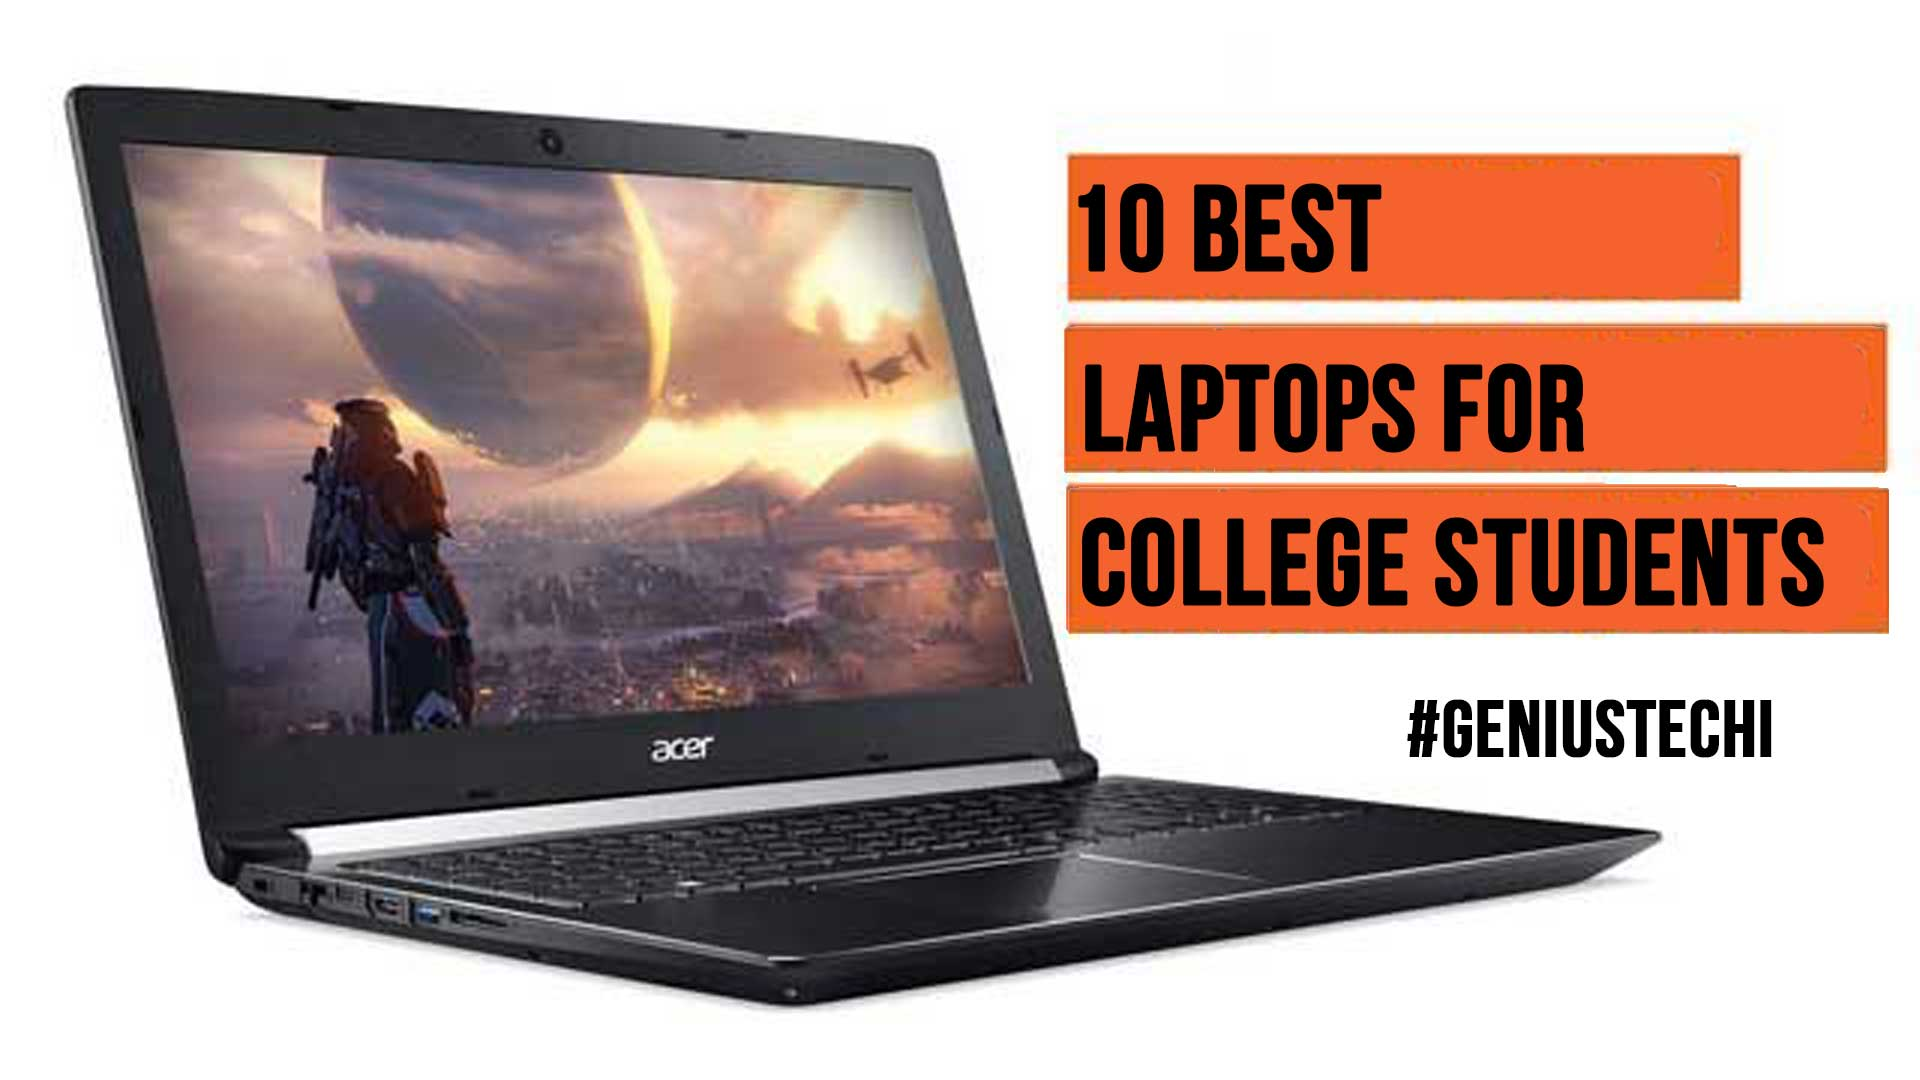 10 Best Laptops for College Students of 2020